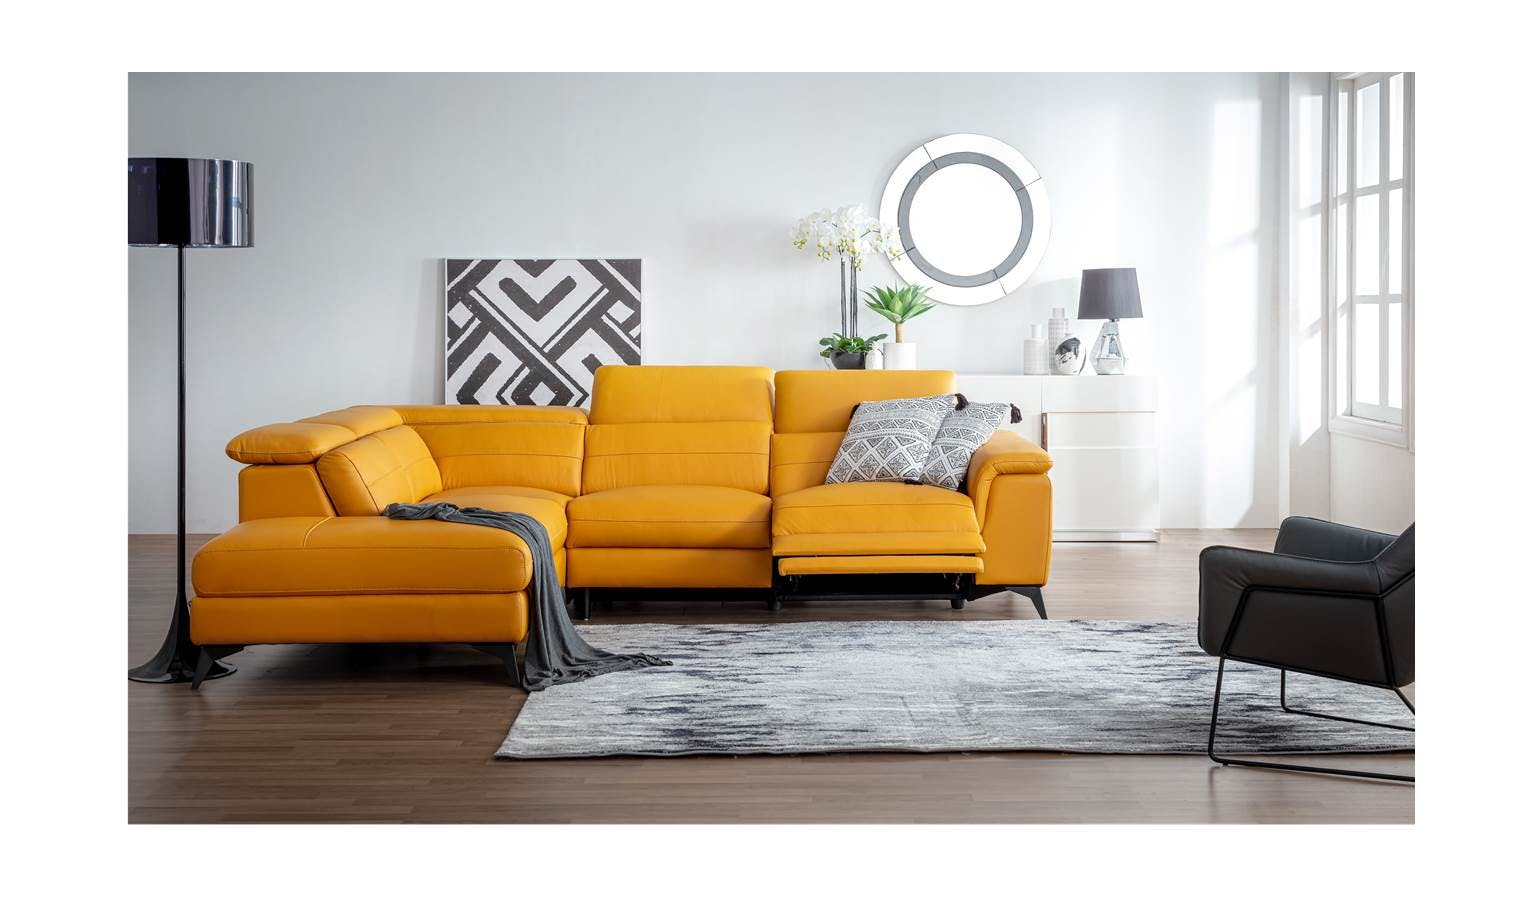 Sunny Full Leather L-Shape Sofa | Harvey Norman Malaysia